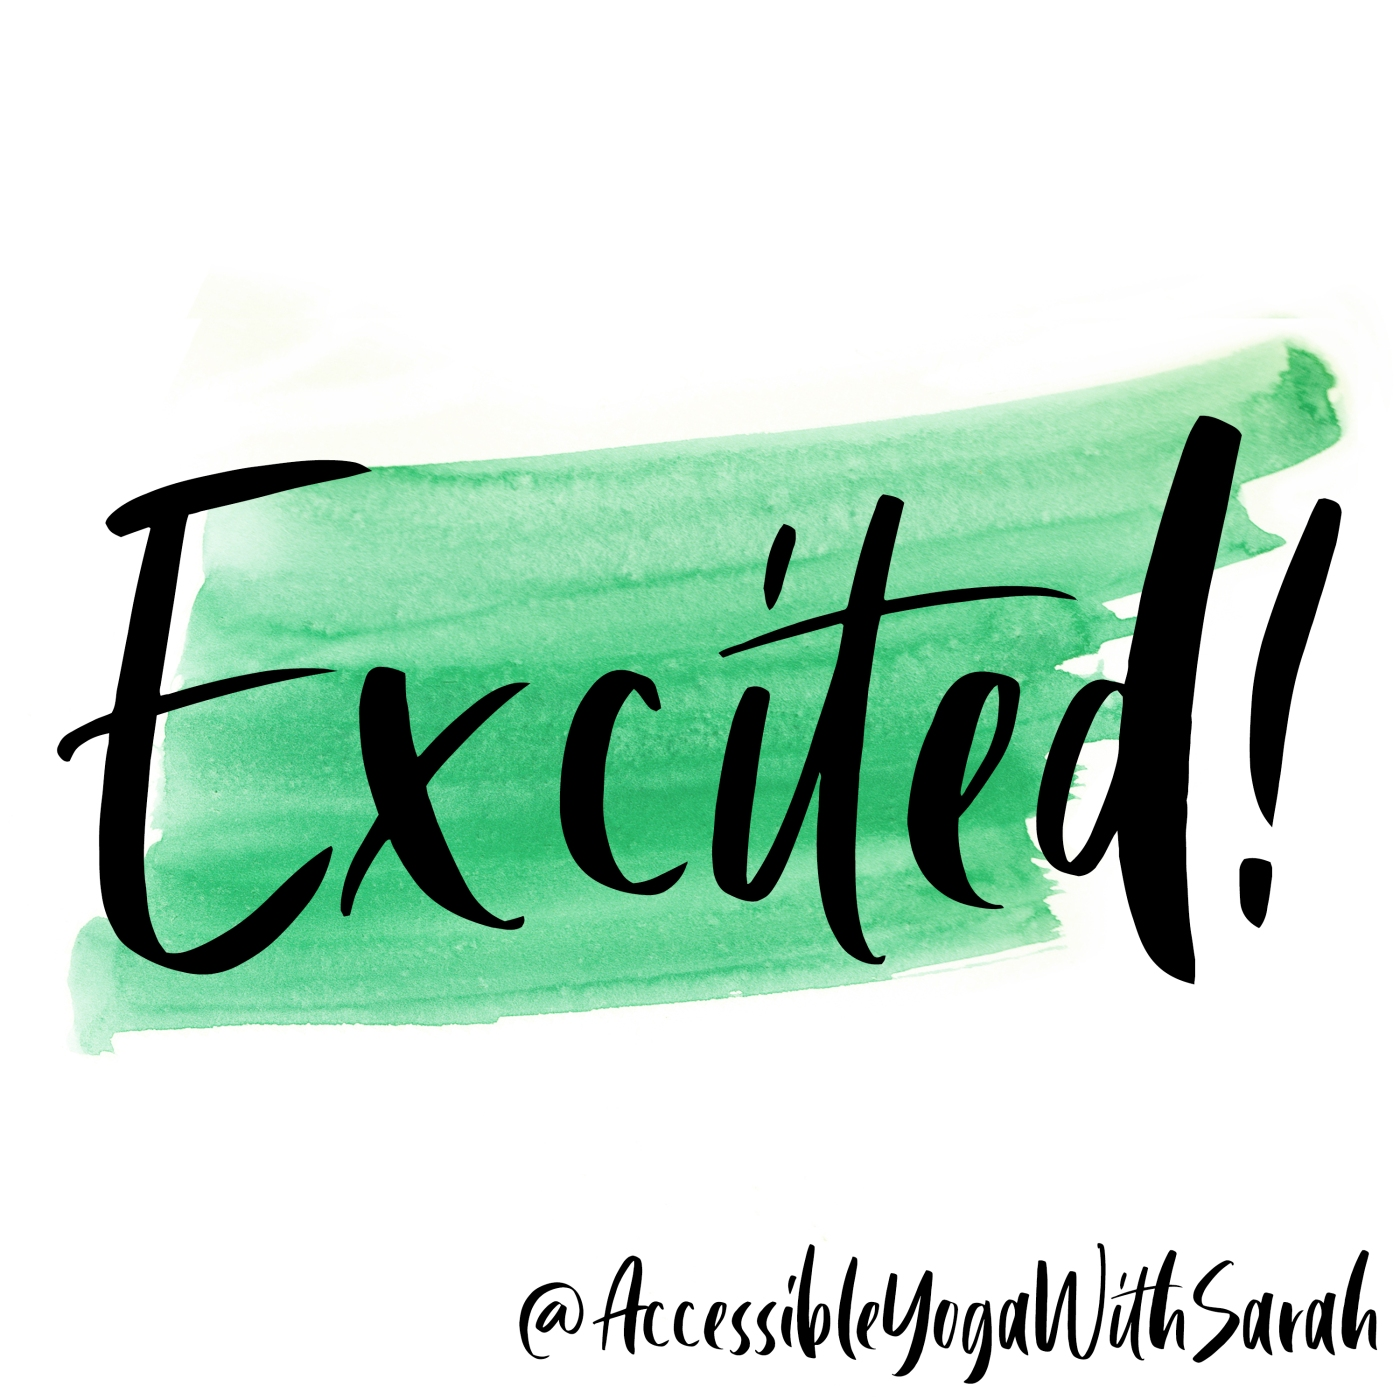 A green watercolour stripe, the logo of Accessible Yoga with Sarah, with the word Excited over the top.